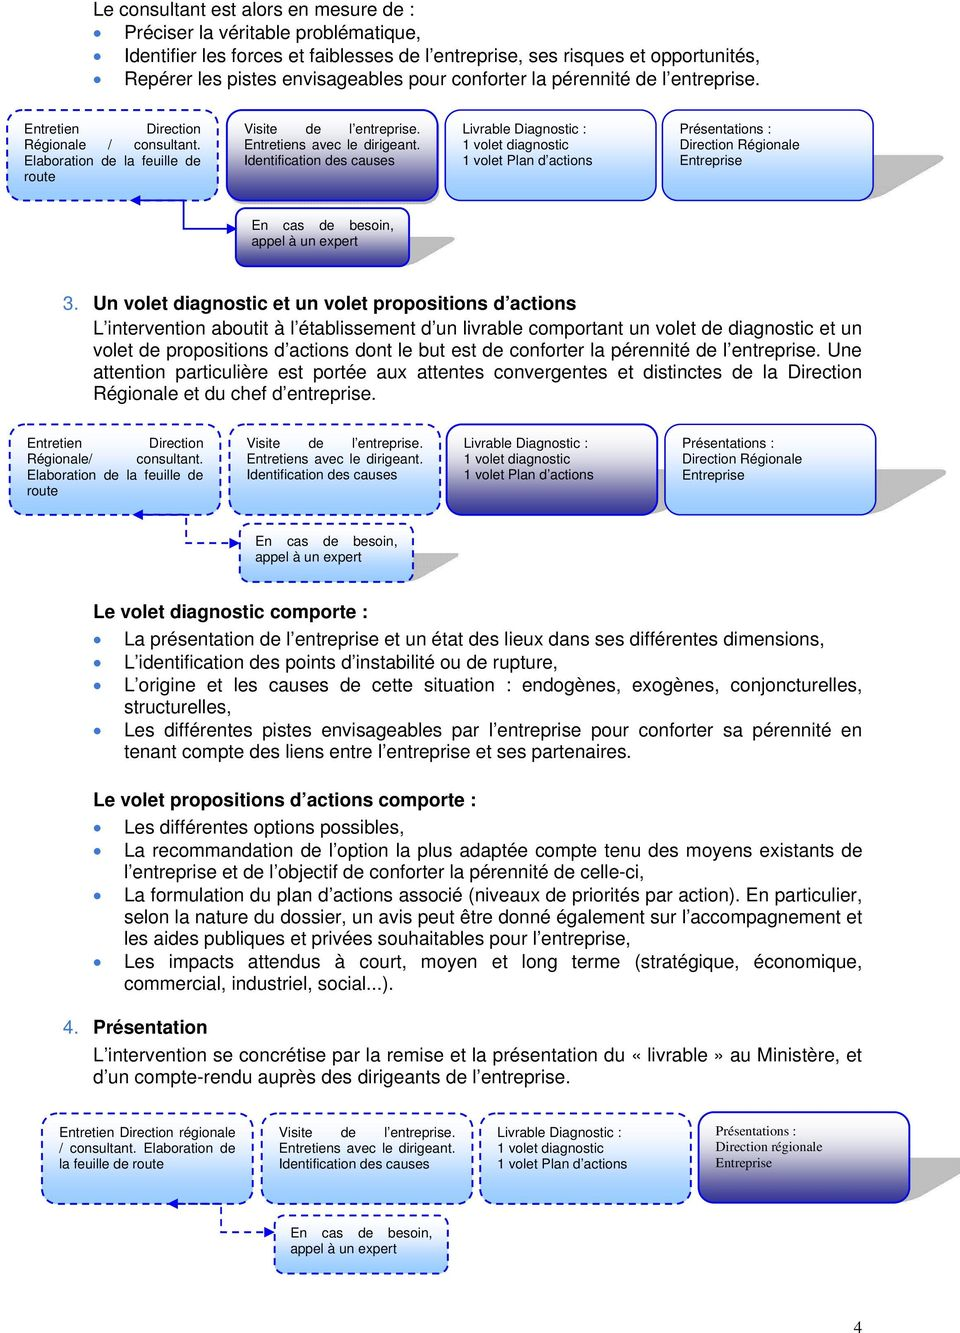 Un volet diagnostic et un volet propositions d actions L intervention aboutit à l établissement d un livrable comportant un volet de diagnostic et un volet de propositions d actions dont le but est